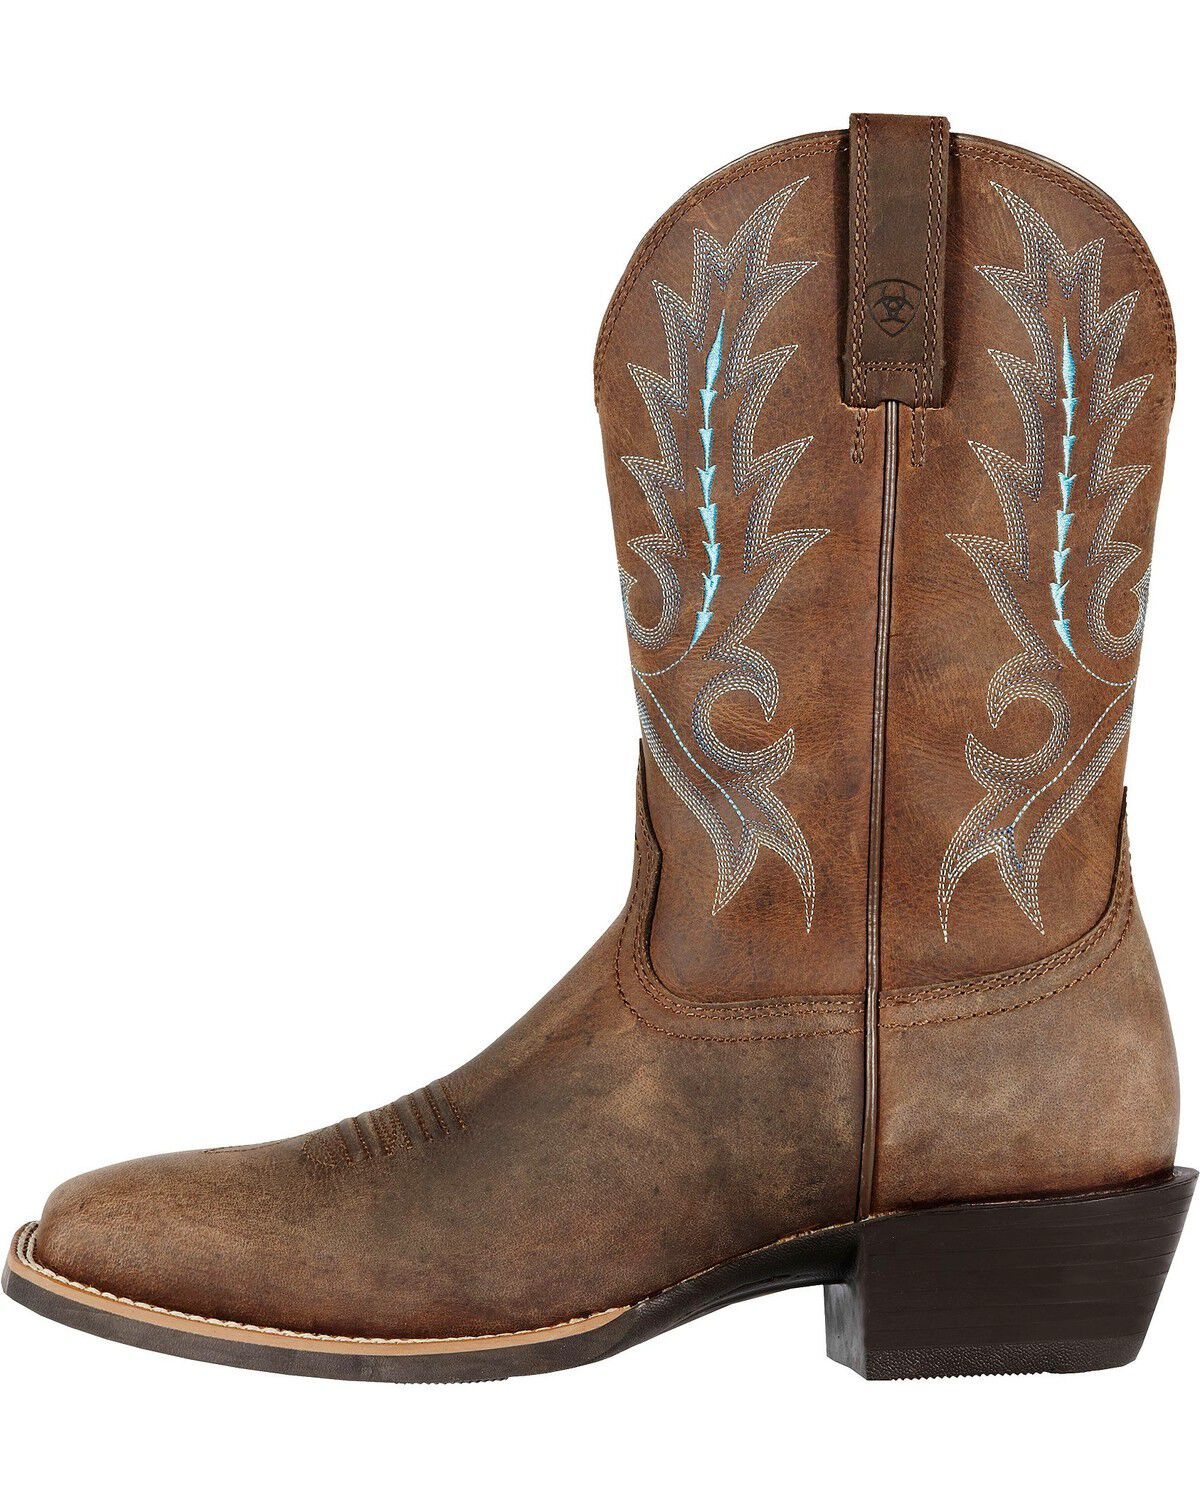 Sport Outfitted Western Boots | Boot Barn